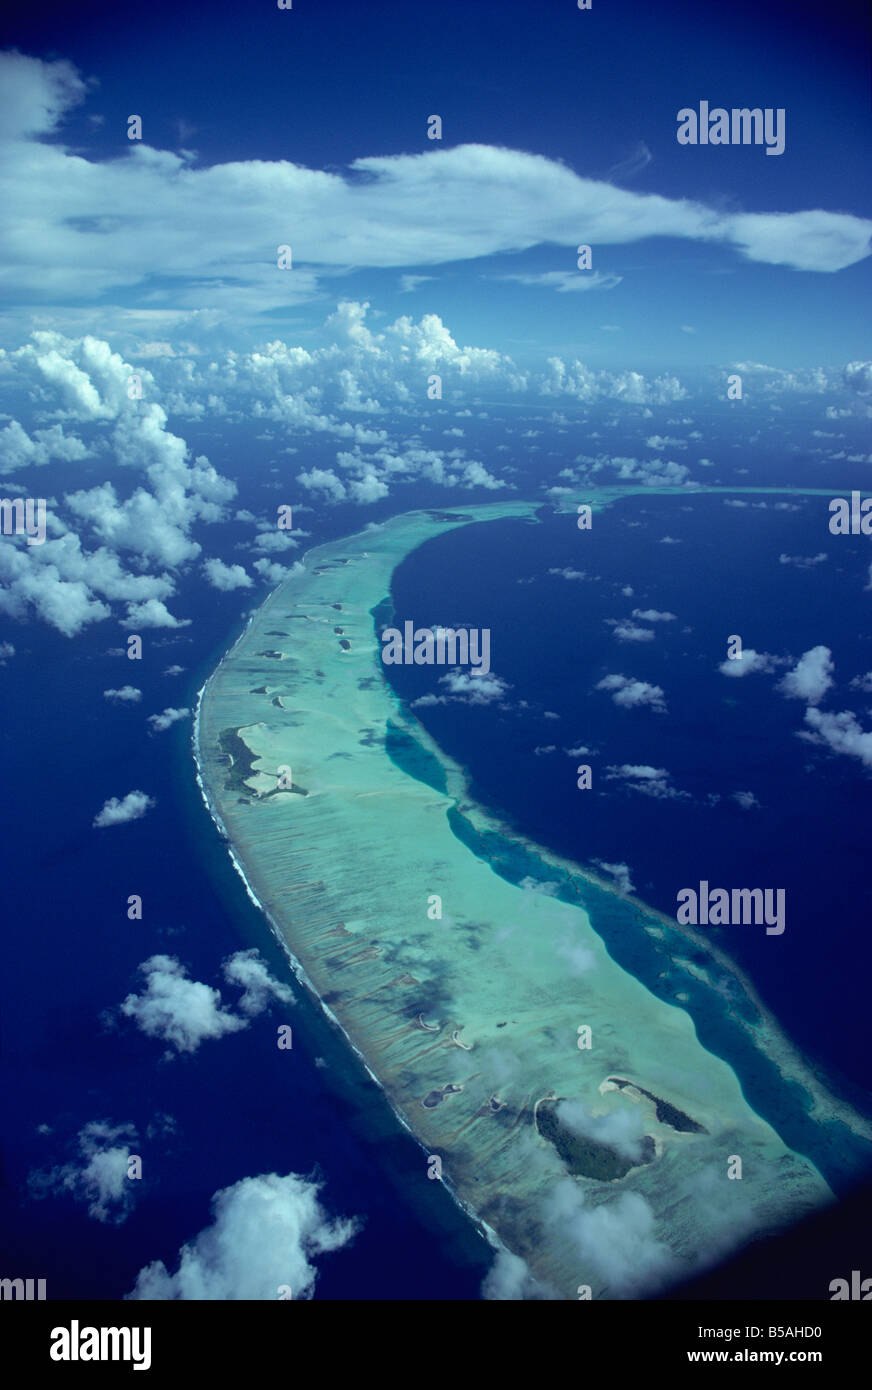 Maldive Islands, Indian Ocean - Stock Image